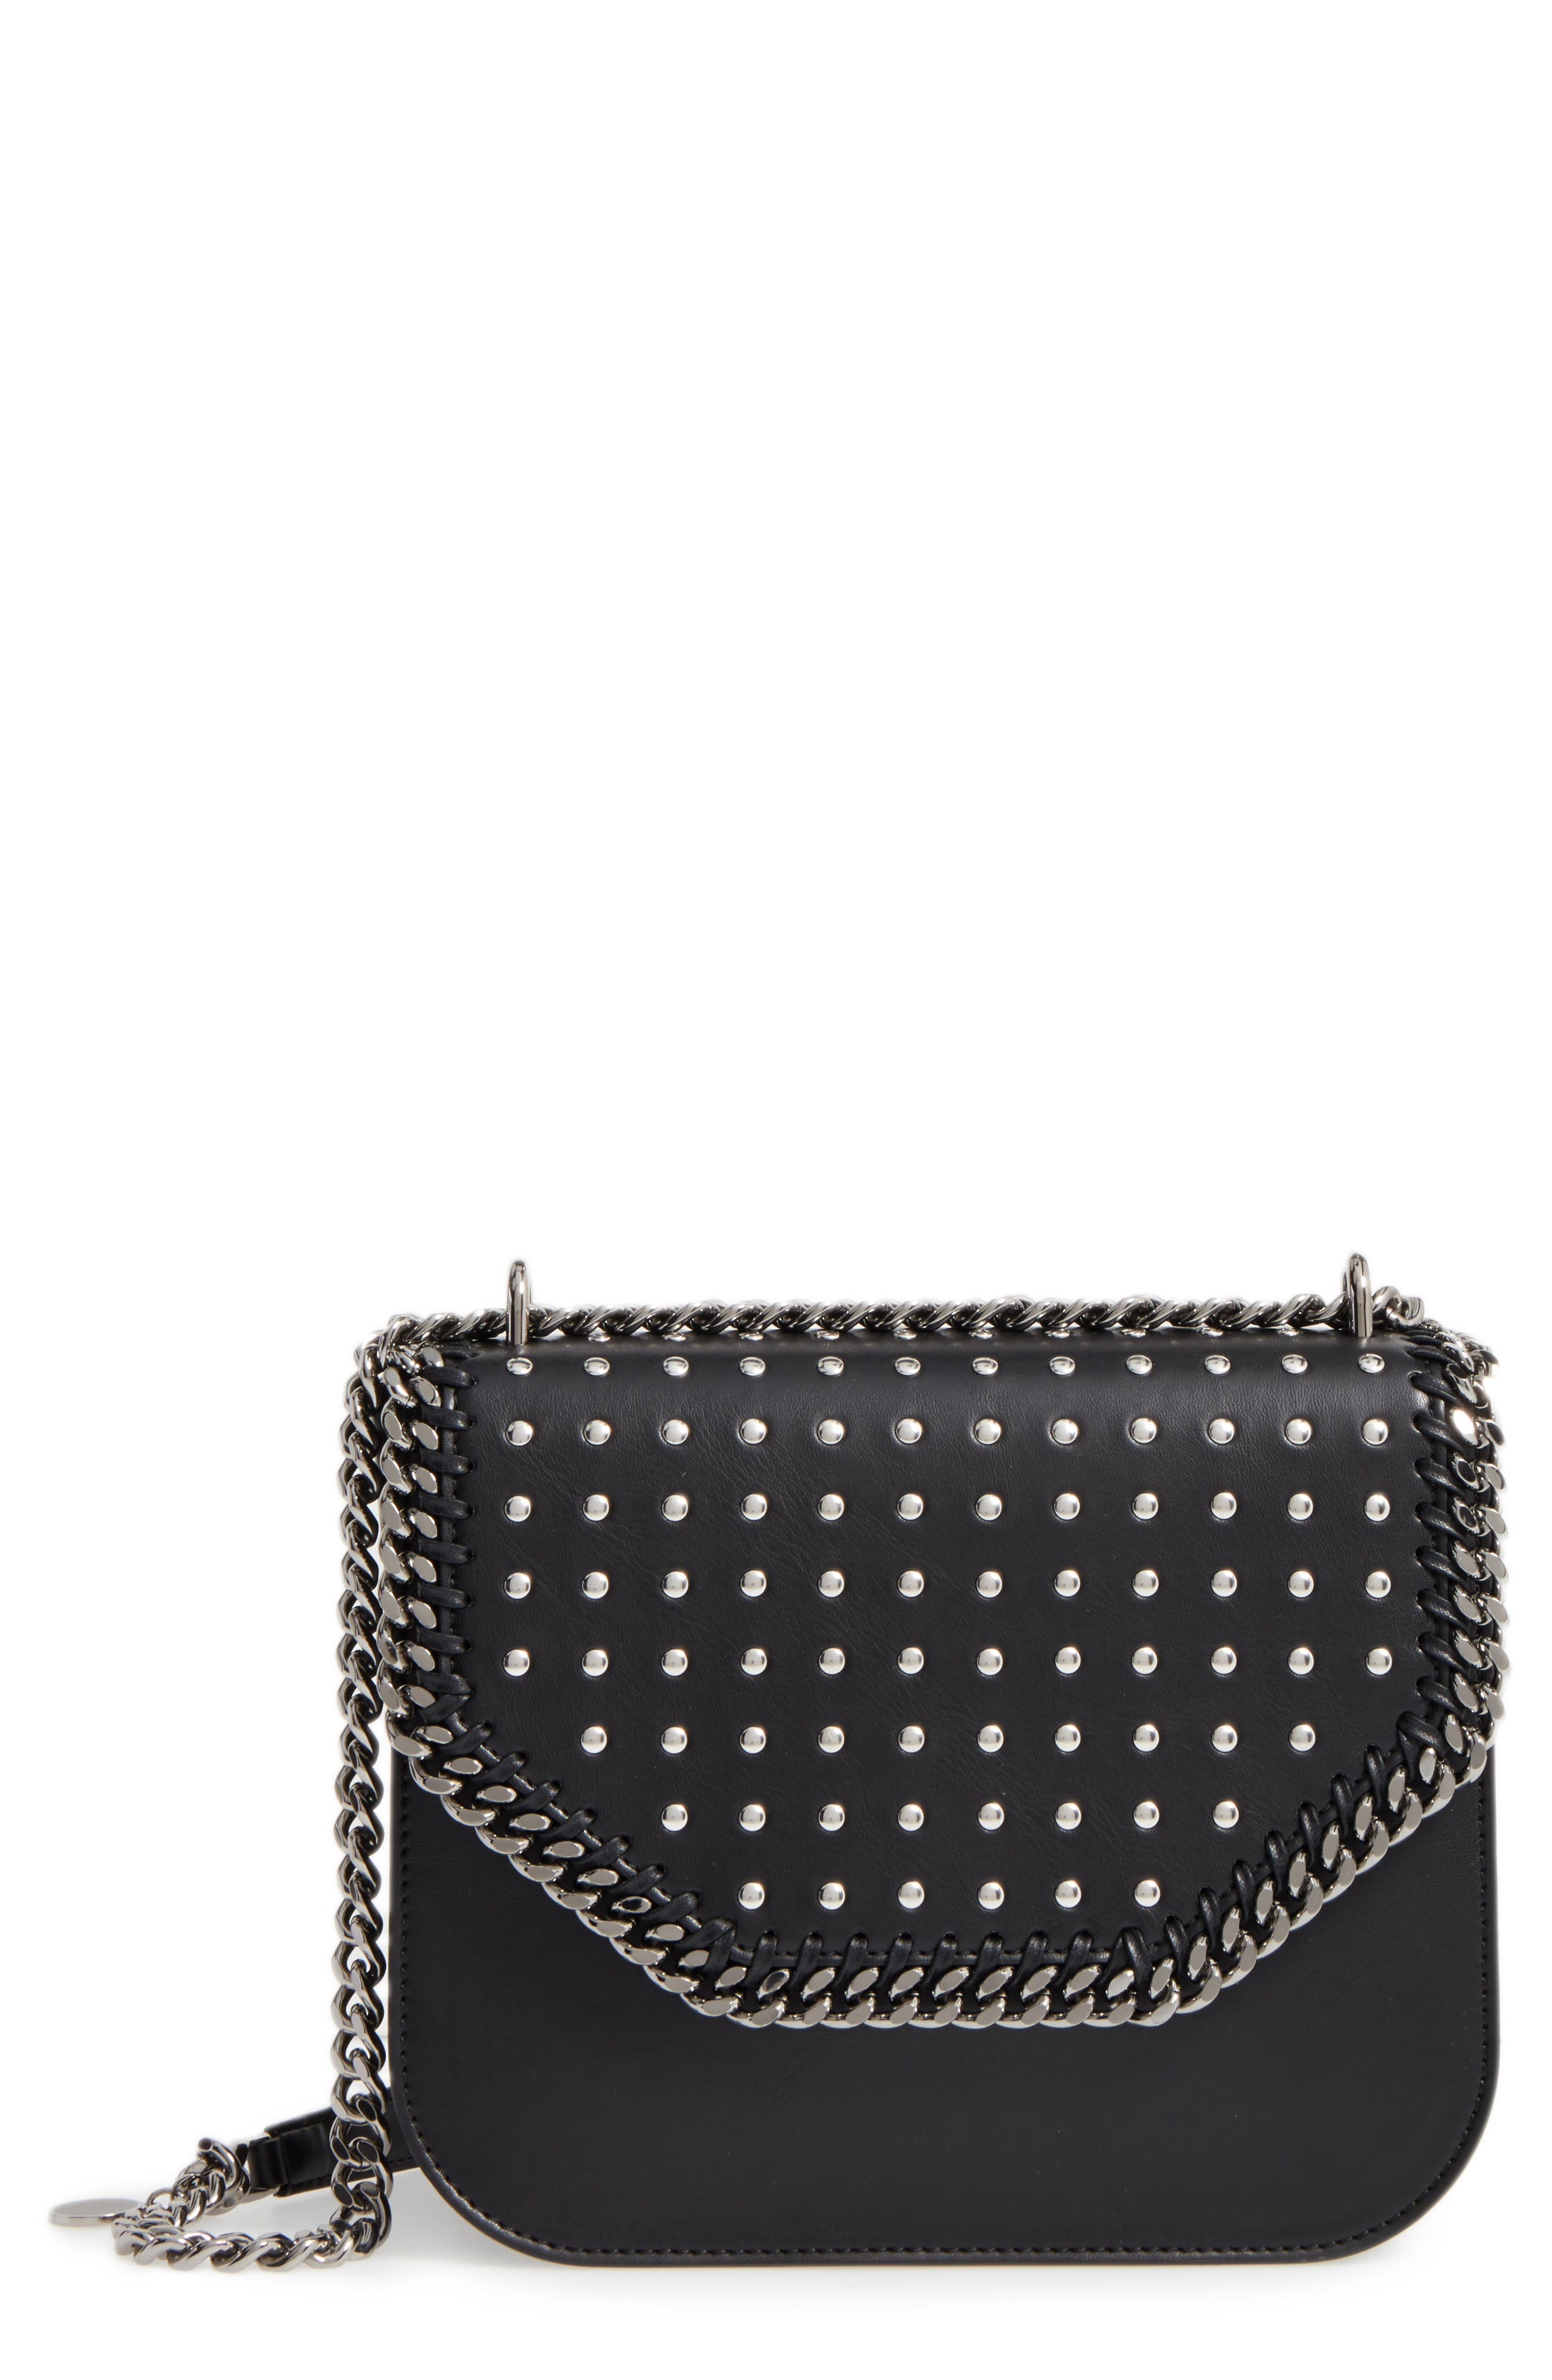 STELLA MCCARTNEY Fallabella Box Faux Leather Crossbody Bag